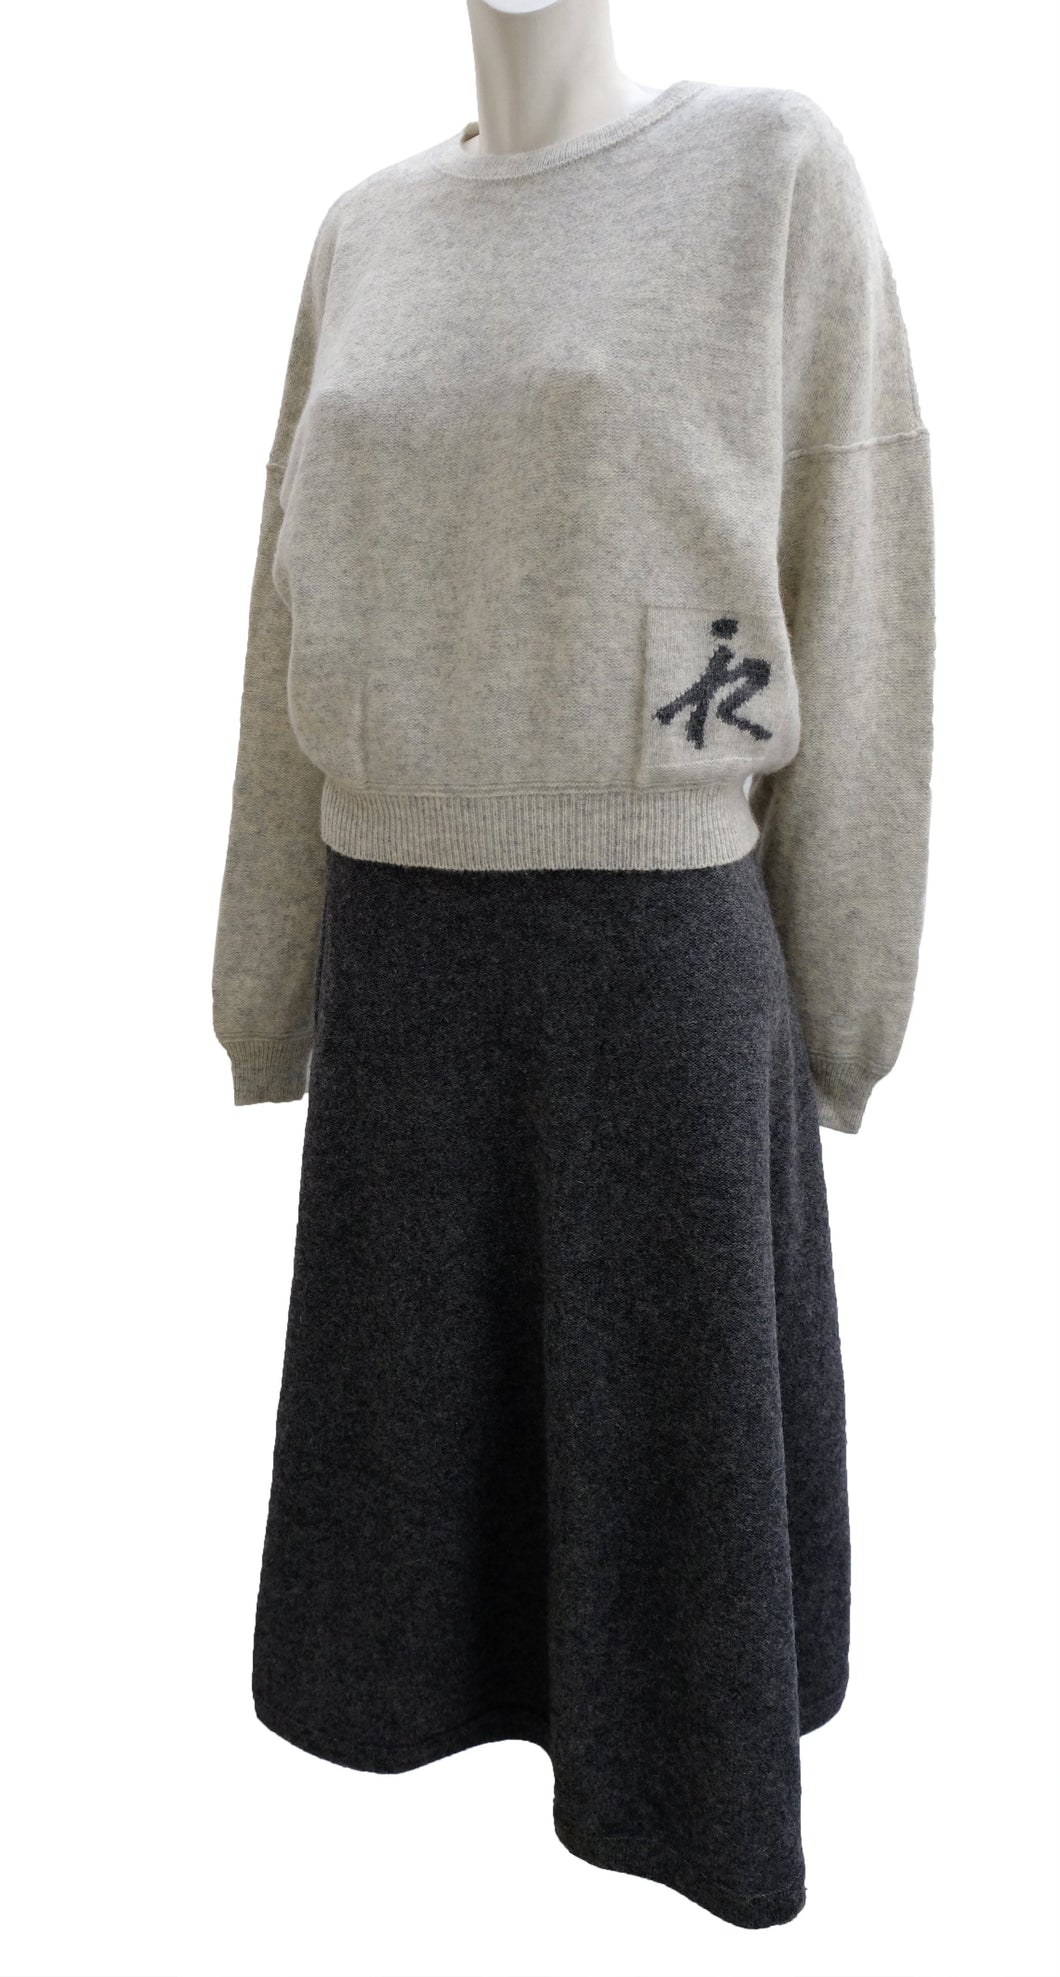 Sonia Rykiel Vintage Knitted 2-Piece in Grey wool, UK10-12